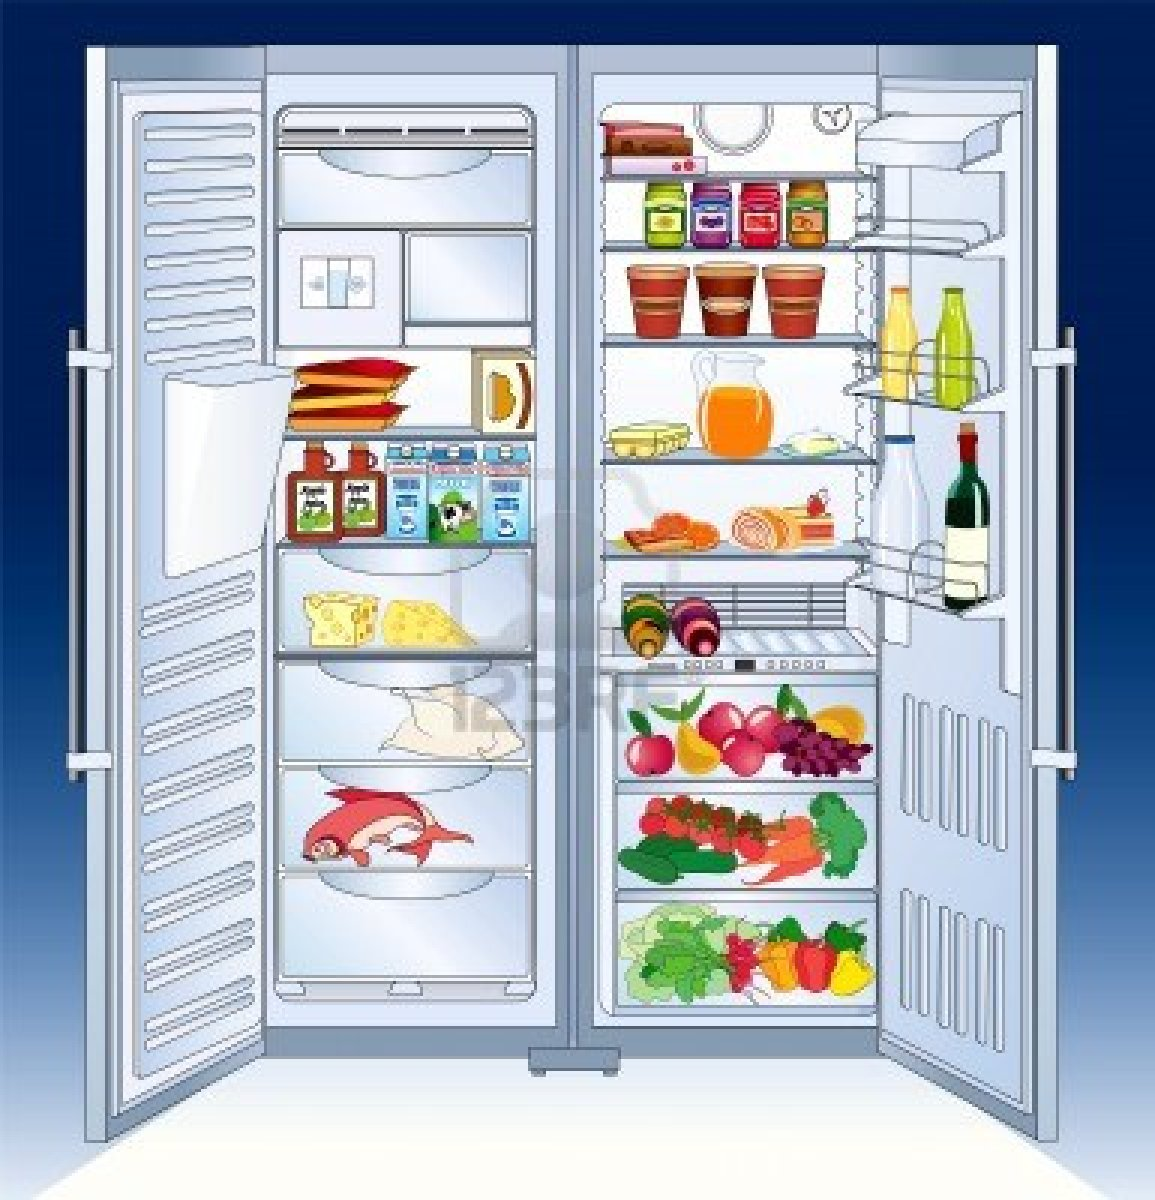 cleaning fridge clipart - photo #38